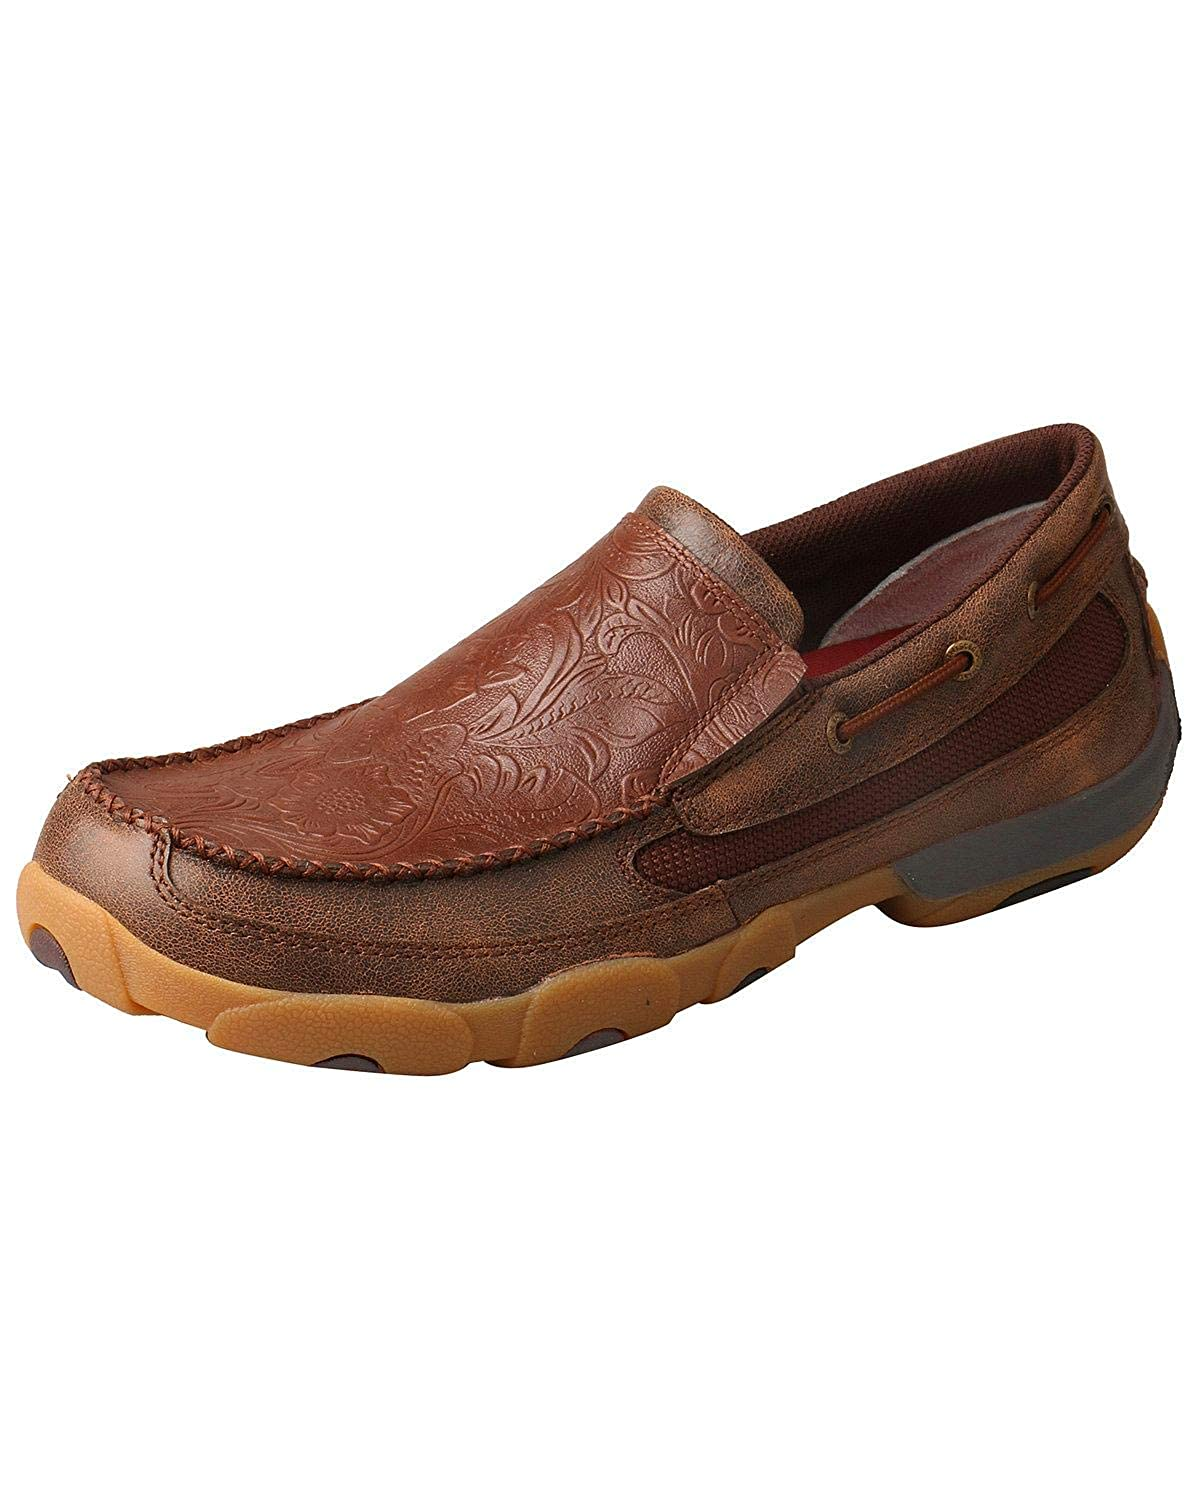 Amazon.com | Twisted X Mens Slip-On Driving Moccasins Moc Toe | Loafers & Slip-Ons